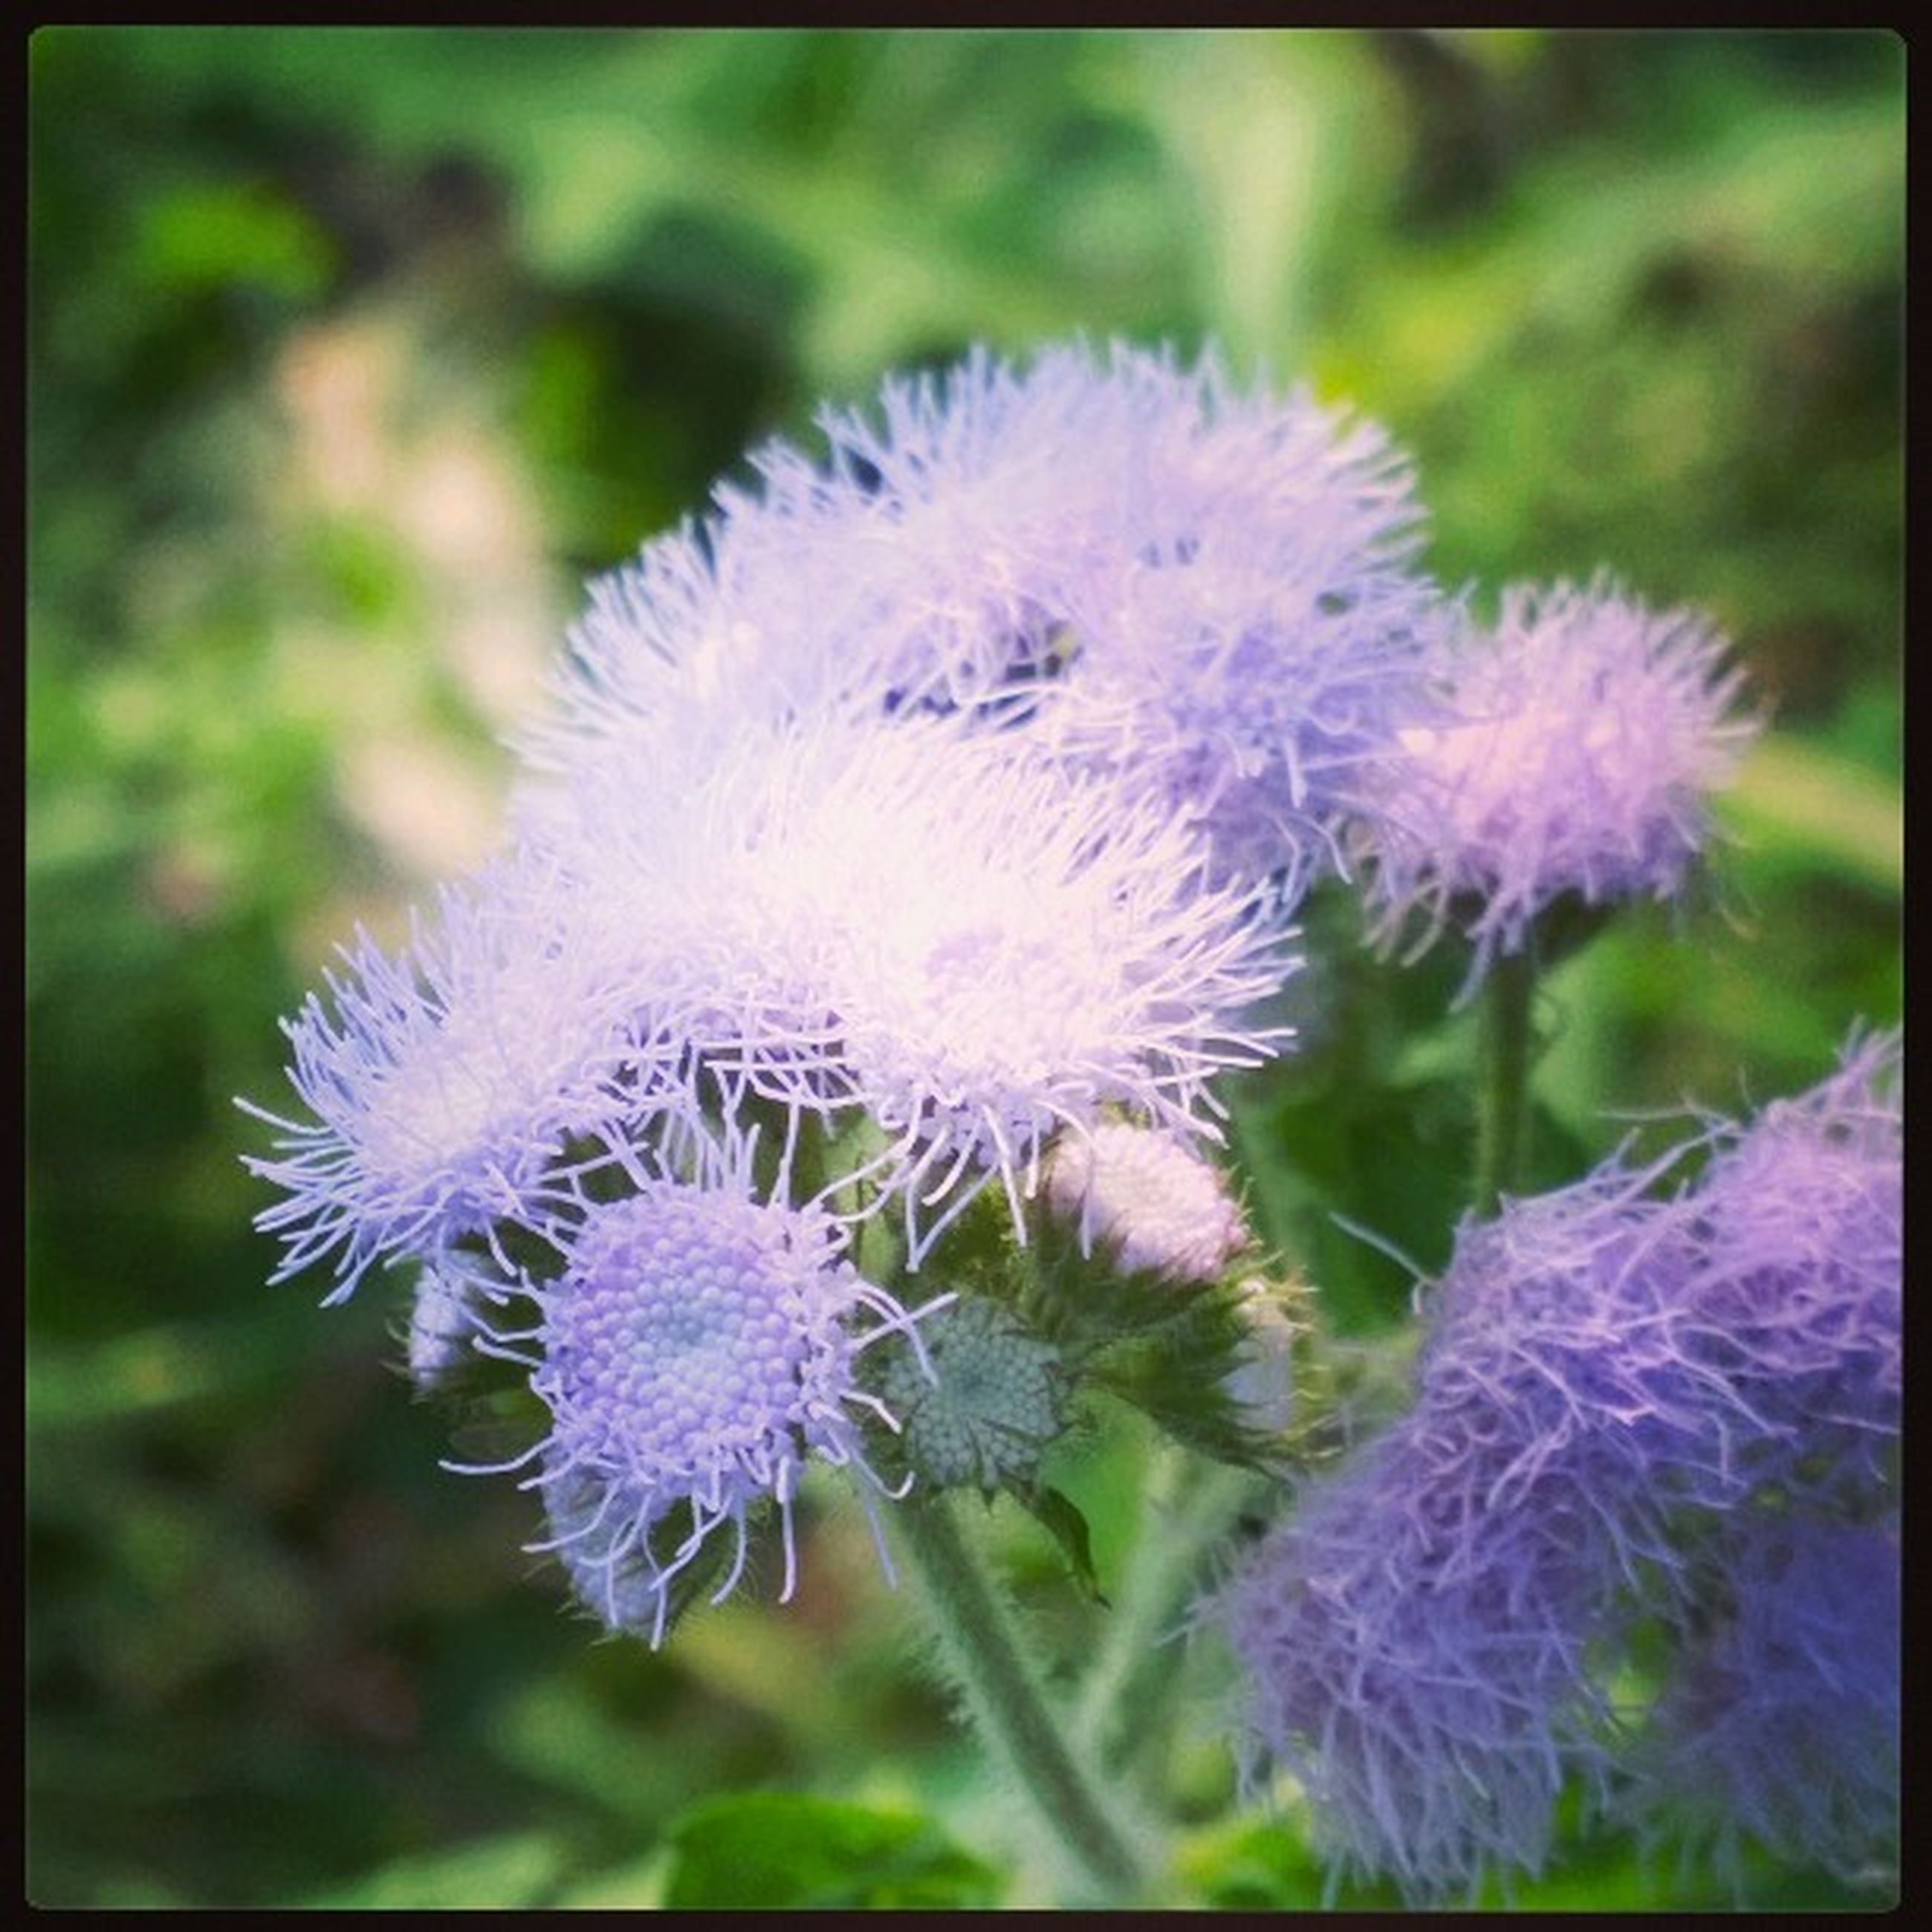 flower, purple, freshness, fragility, growth, focus on foreground, flower head, close-up, beauty in nature, nature, blooming, plant, petal, transfer print, auto post production filter, in bloom, day, outdoors, no people, selective focus